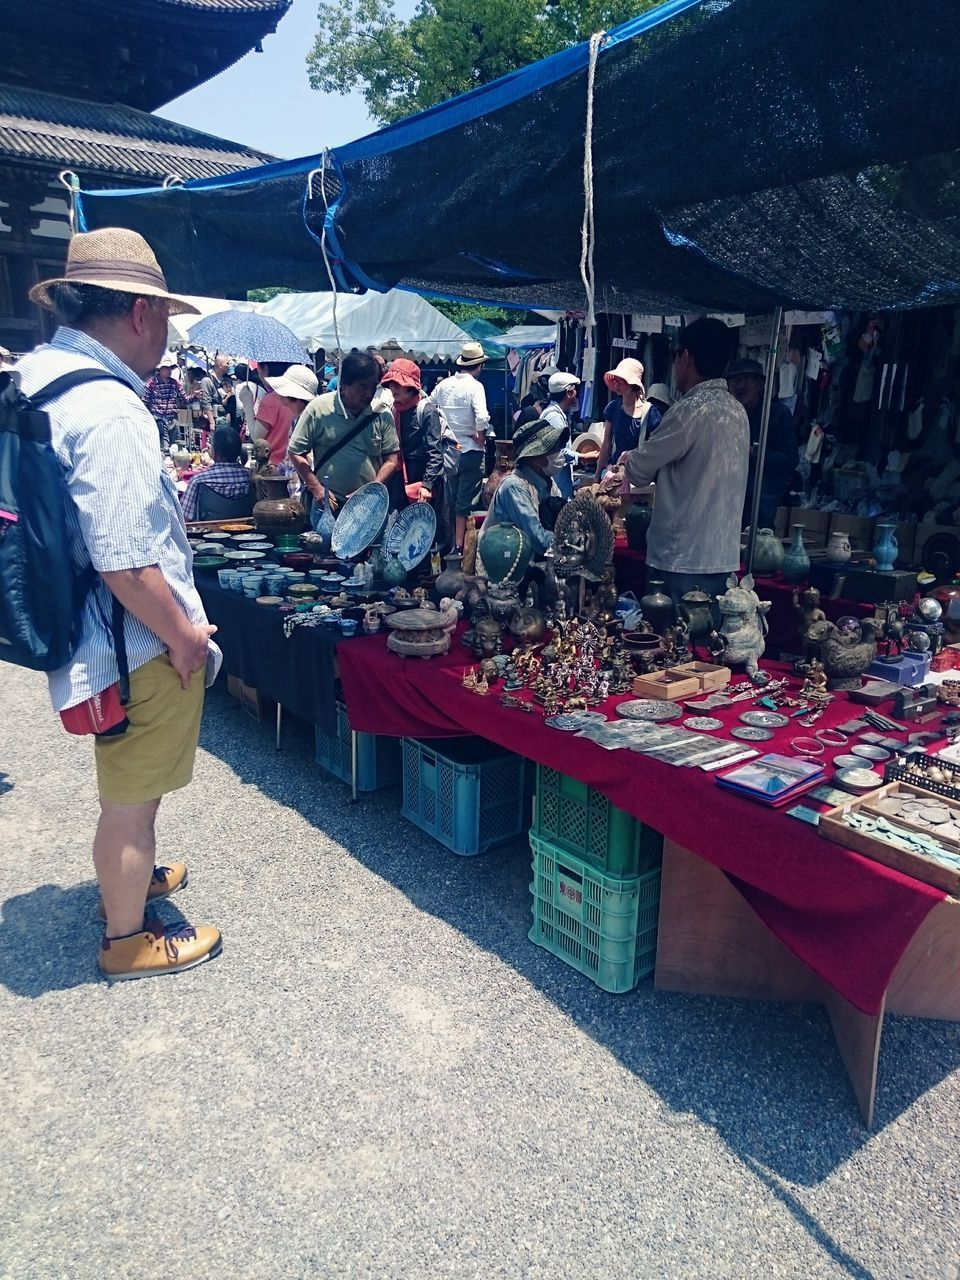 real people, market, for sale, market stall, day, large group of people, retail, outdoors, market vendor, casual clothing, men, lifestyles, full length, leisure activity, asian style conical hat, standing, occupation, food, people